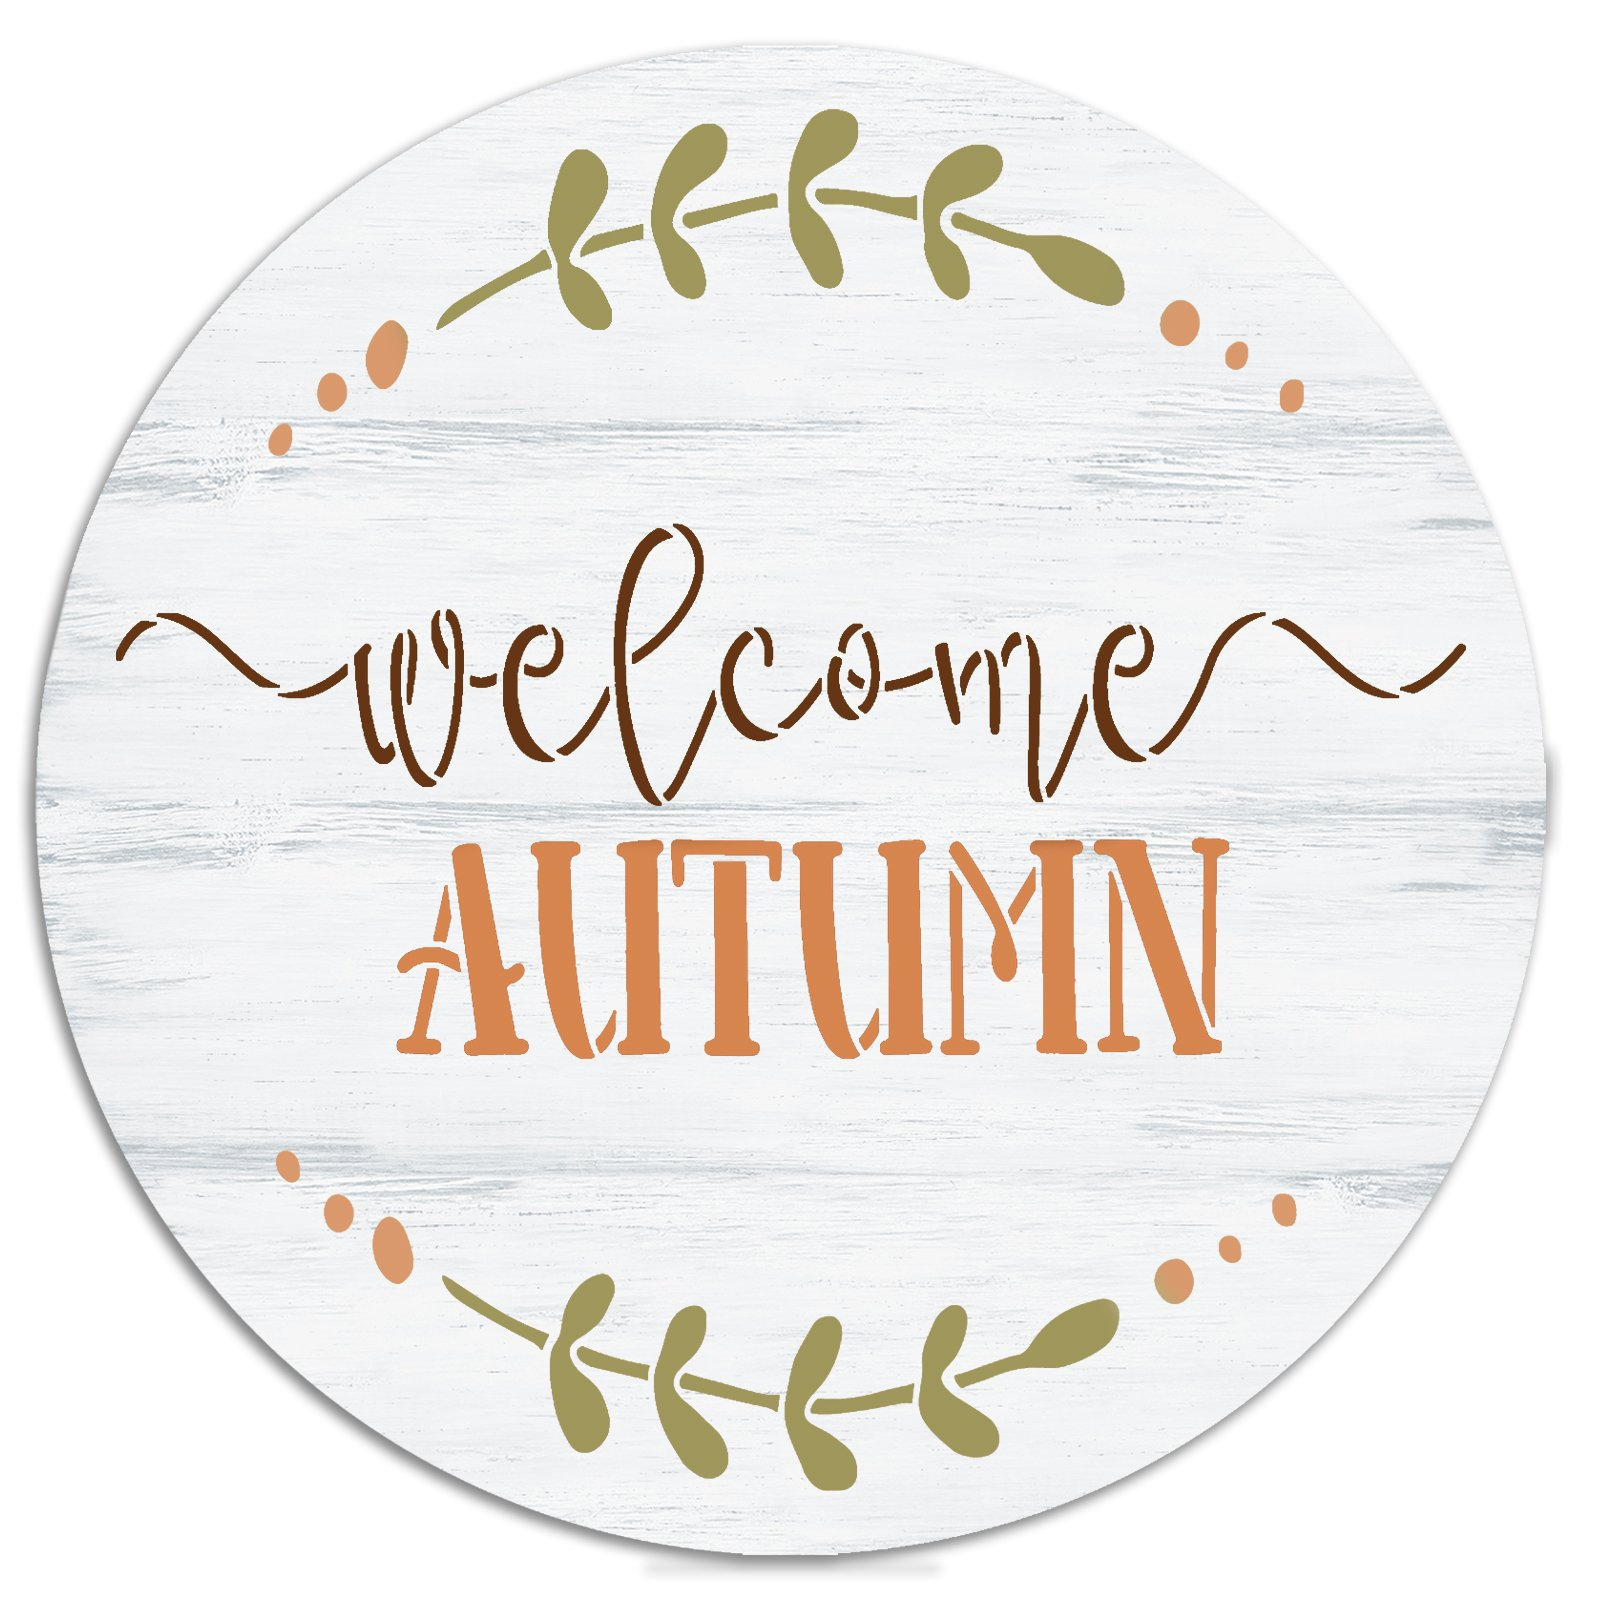 Welcome Autumn Round Stencil by StudioR12 | DIY Fall Cursive Script Laurel Home Decor | Craft & Paint Wood Sign Reusable Mylar Template | Select Size